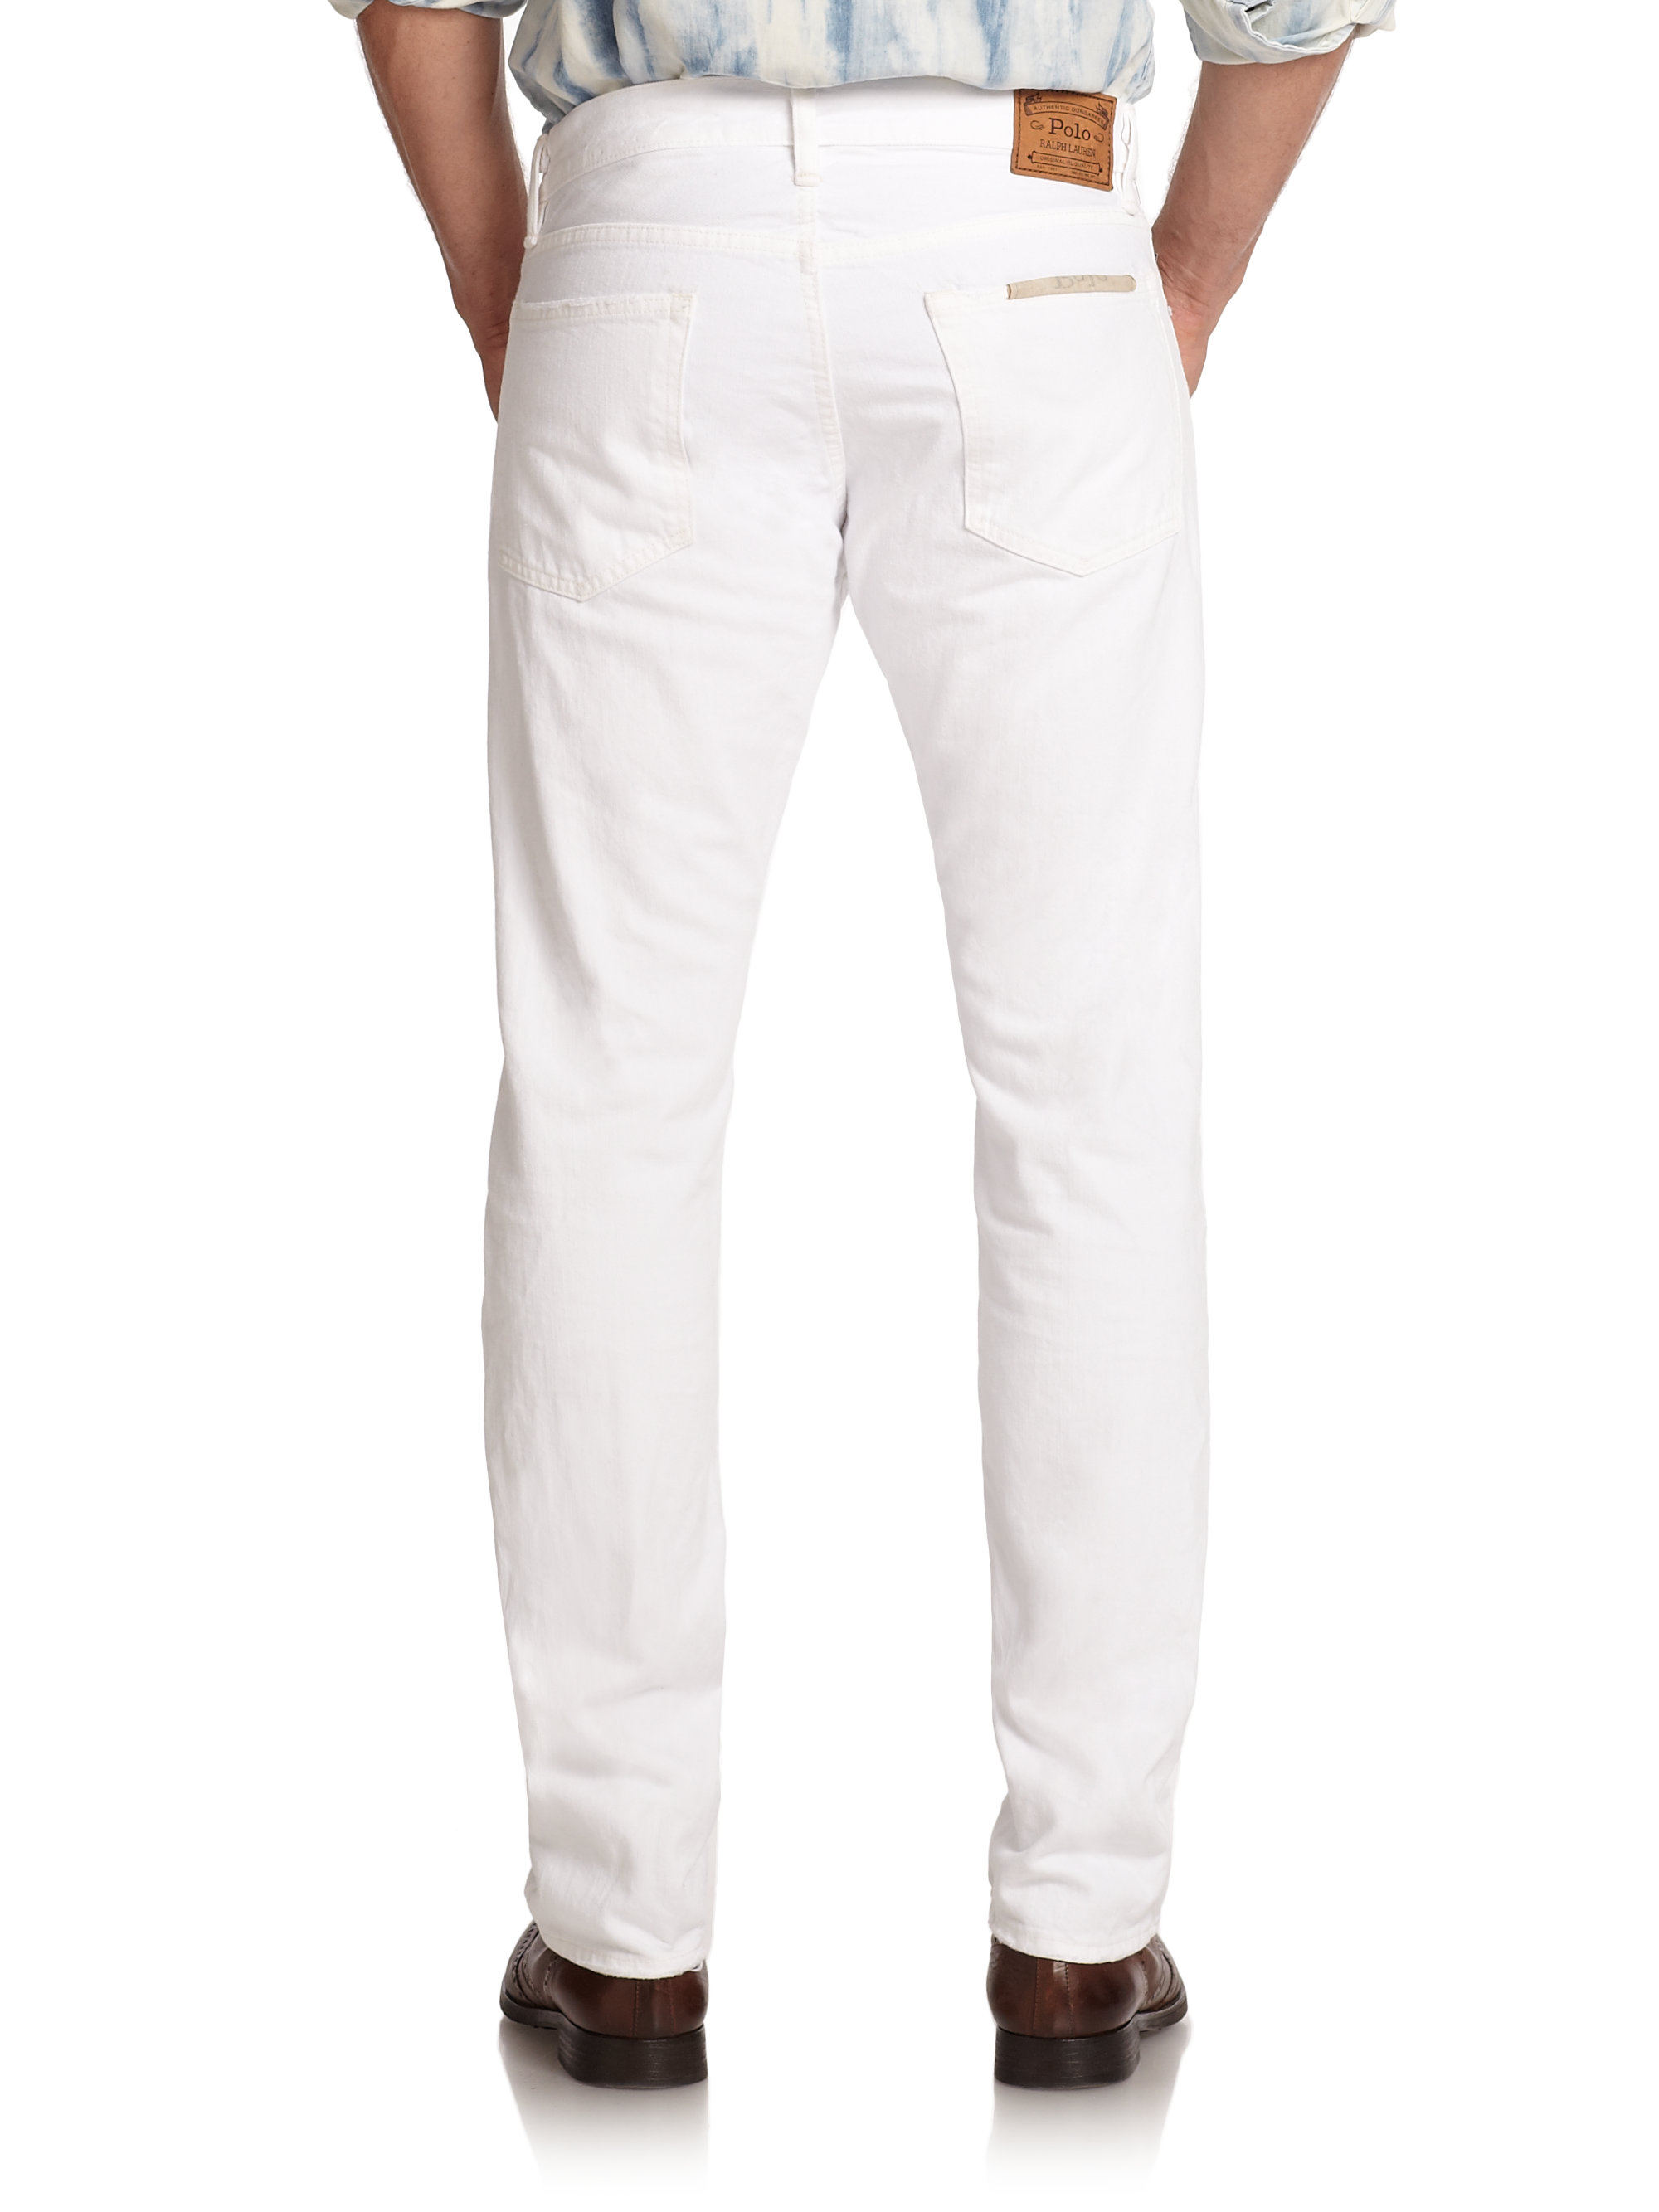 f8a17a31 Polo Ralph Lauren White Varick Slim-straight Hudson Jeans for men